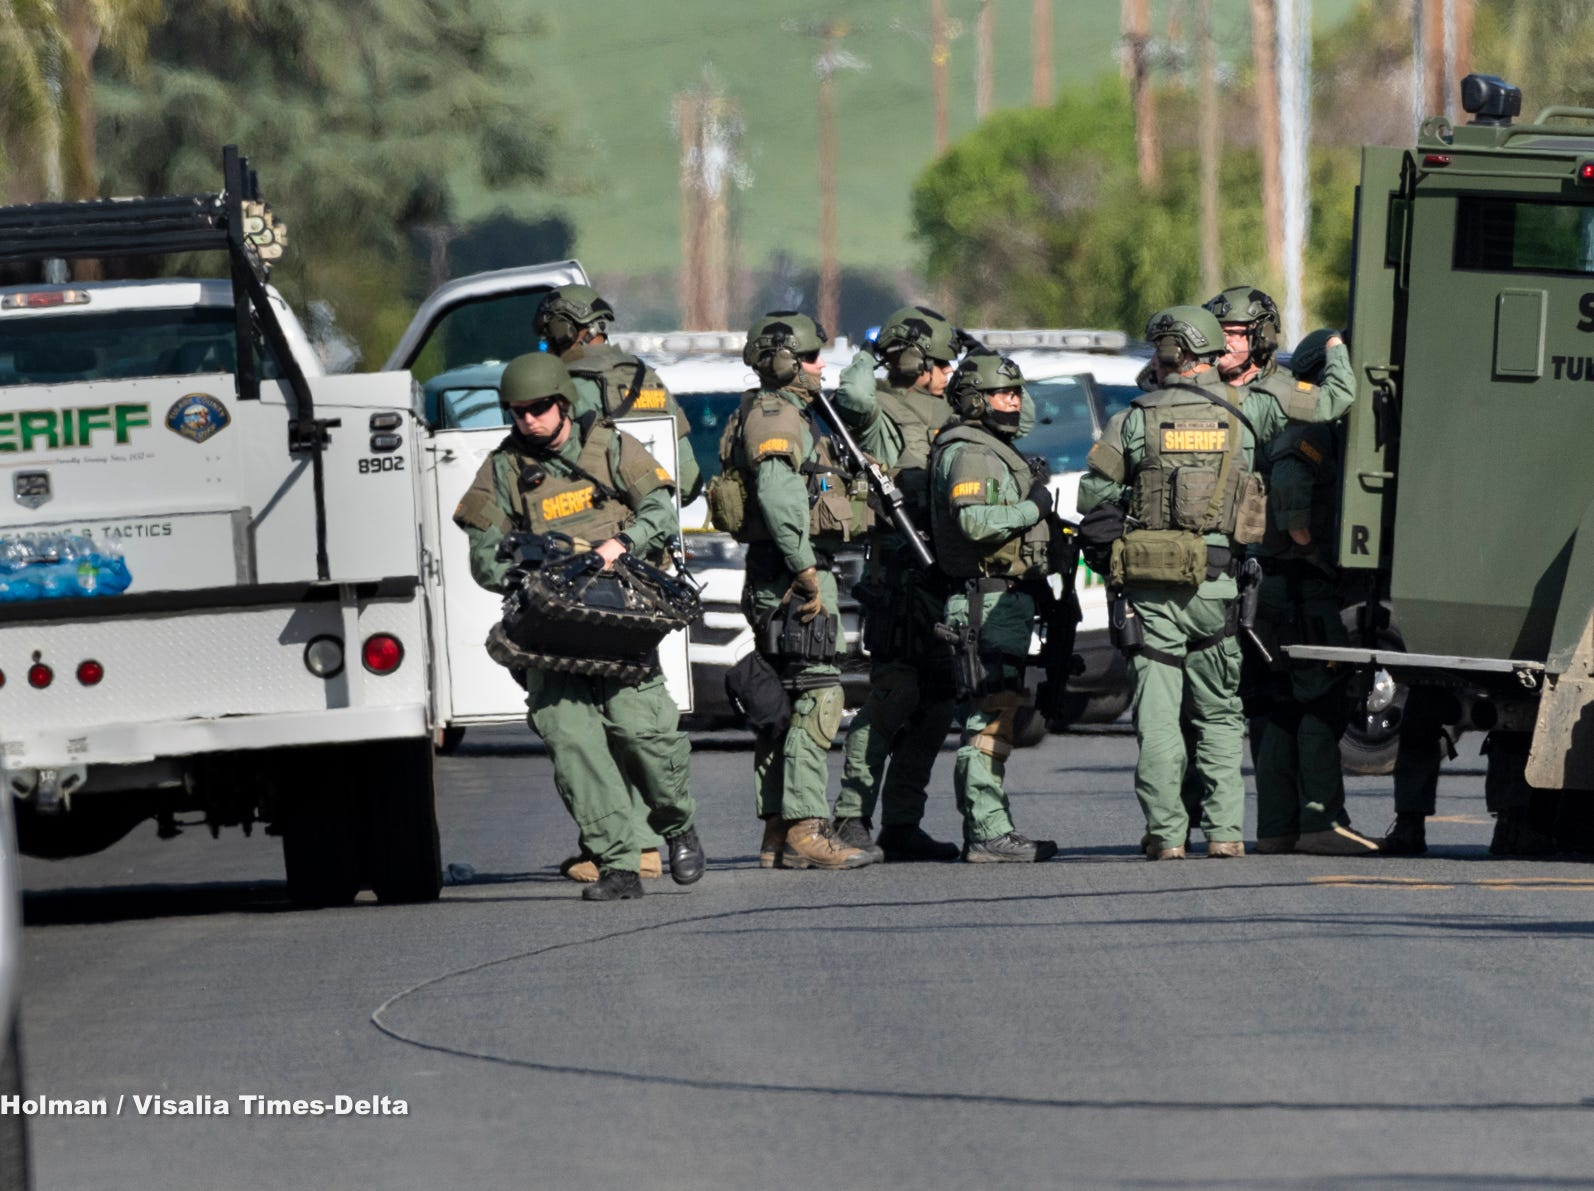 Deputies were called to a home on Road 404 in Cutler near Mueller Street around 1 p.m. on Friday. The deputies were told a man with a knife ran into a neighbor's home and threatened to kill the residents. Eventually Tulare County Sheriff Department's SWAT members deployed a robot, pictured, into the house and determined the man to be unarmed, clearing the way for deputies to enter and take the man into custody about 4 p.m.